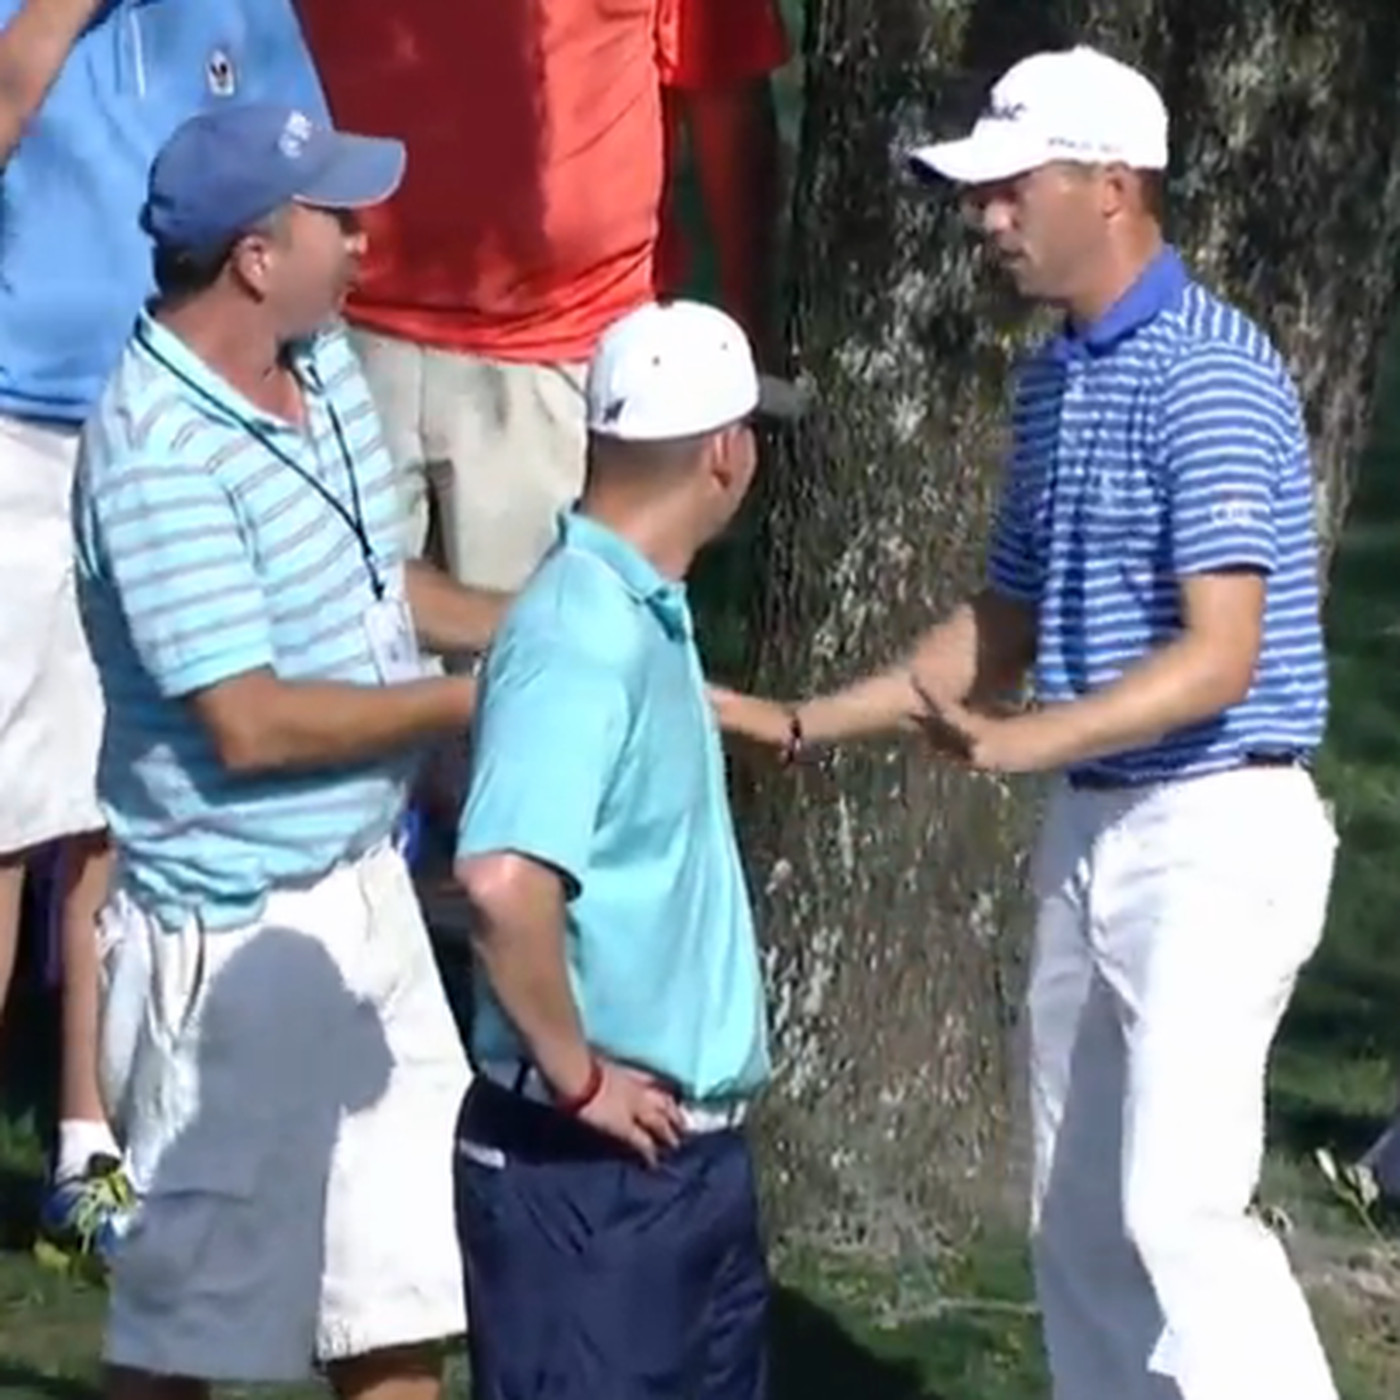 PGA Tour pro attempts driver off the deck and shanks one into a fan -  SBNation.com 1ef84f7fb6f